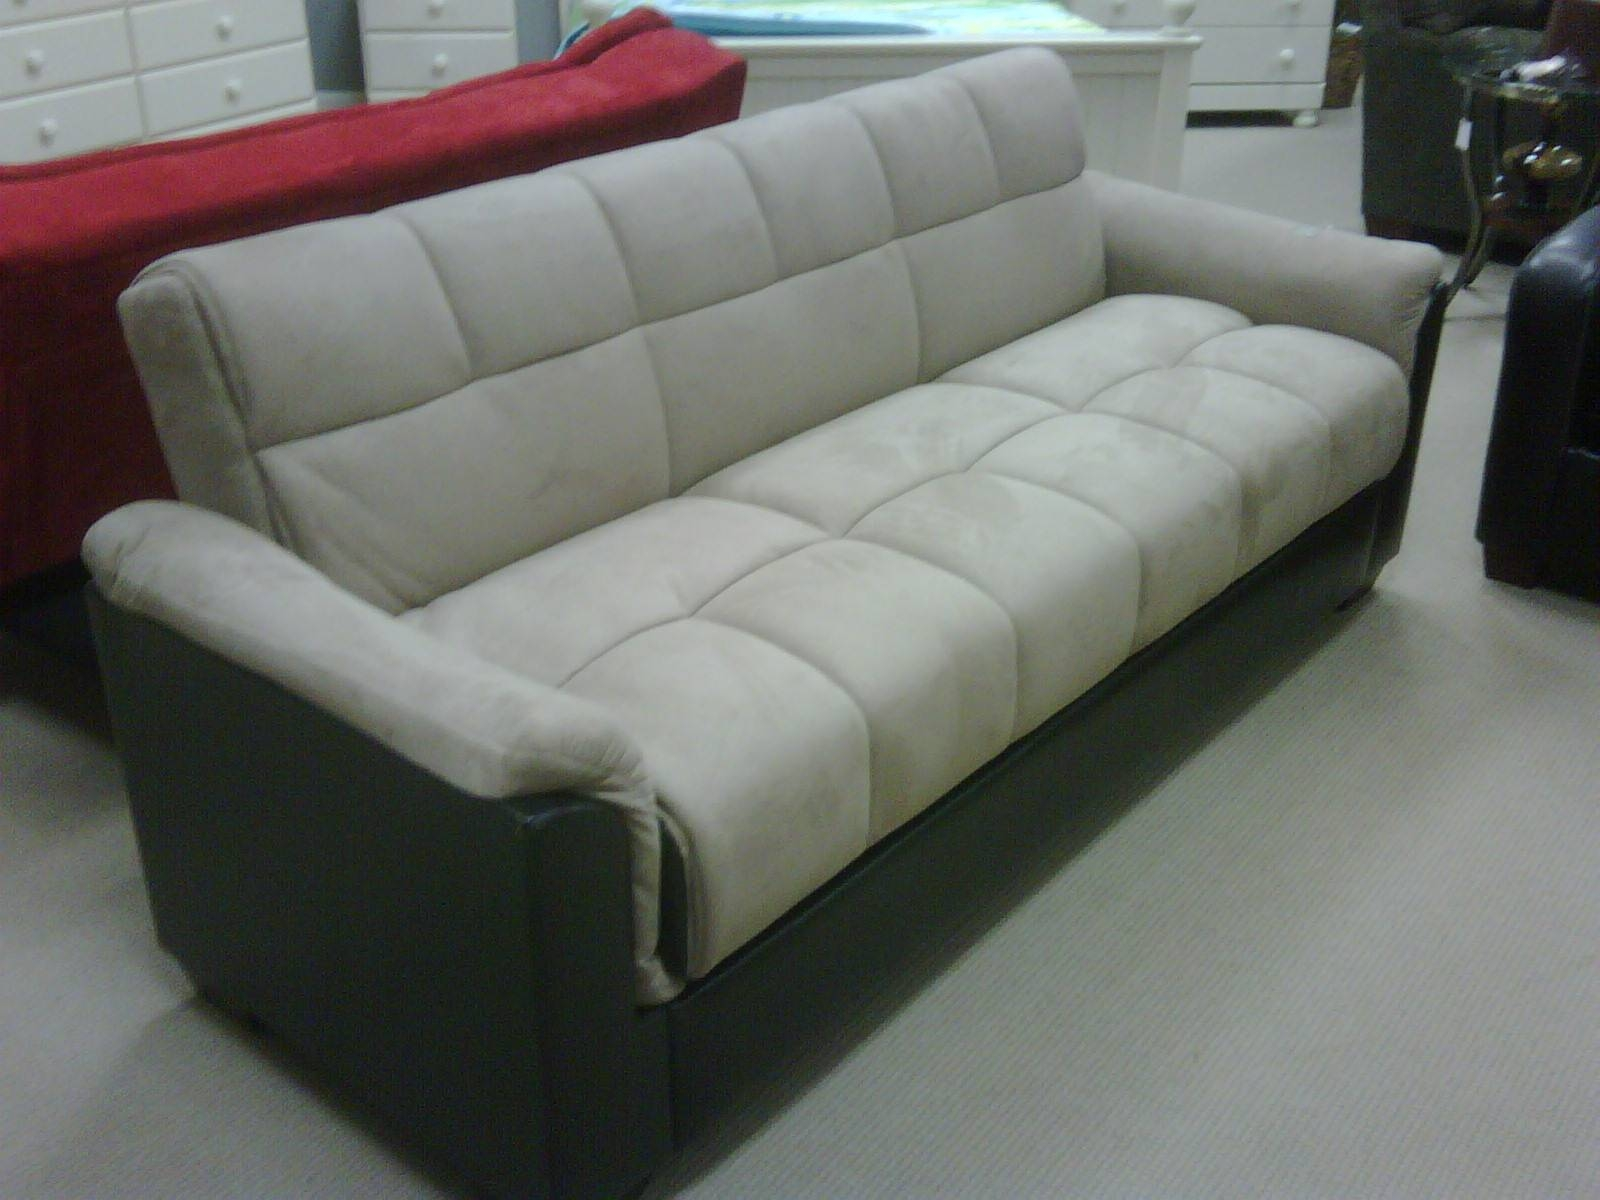 Stunning Big Sofa Bed #2751 : Furniture - Best Furniture Reviews inside Big Lots Sofa Bed (Image 29 of 30)